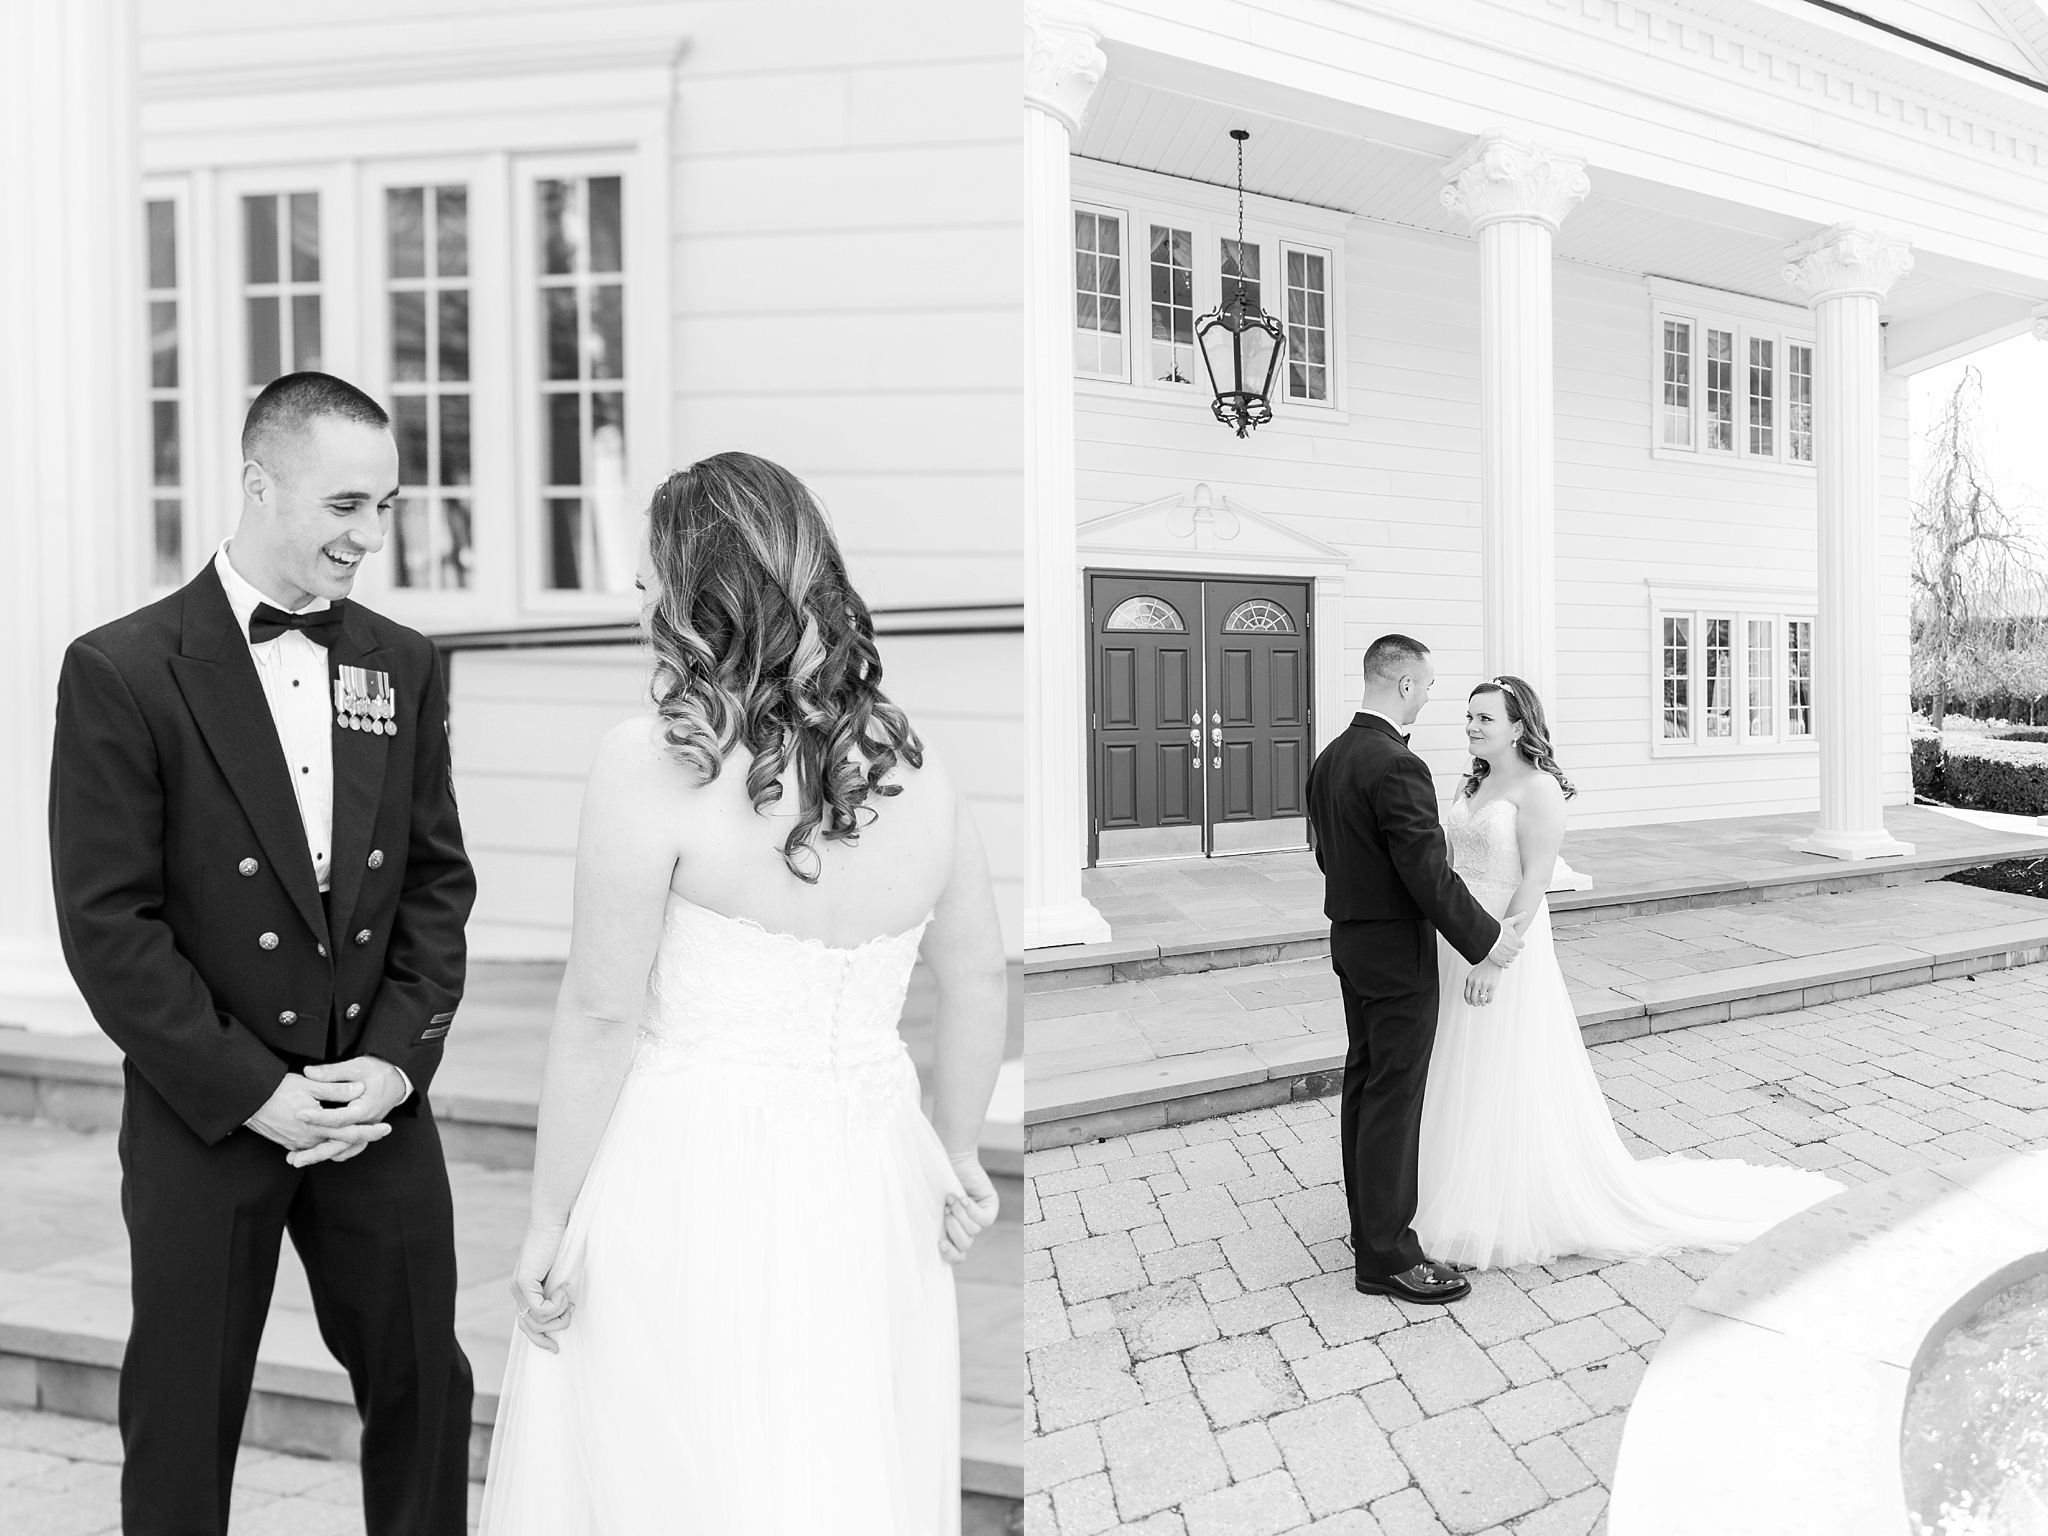 romantic-artful-candid-wedding-photos-in-st-clair-shores-at-the-white-house-wedding-chapel-by-courtney-carolyn-photography_0015.jpg